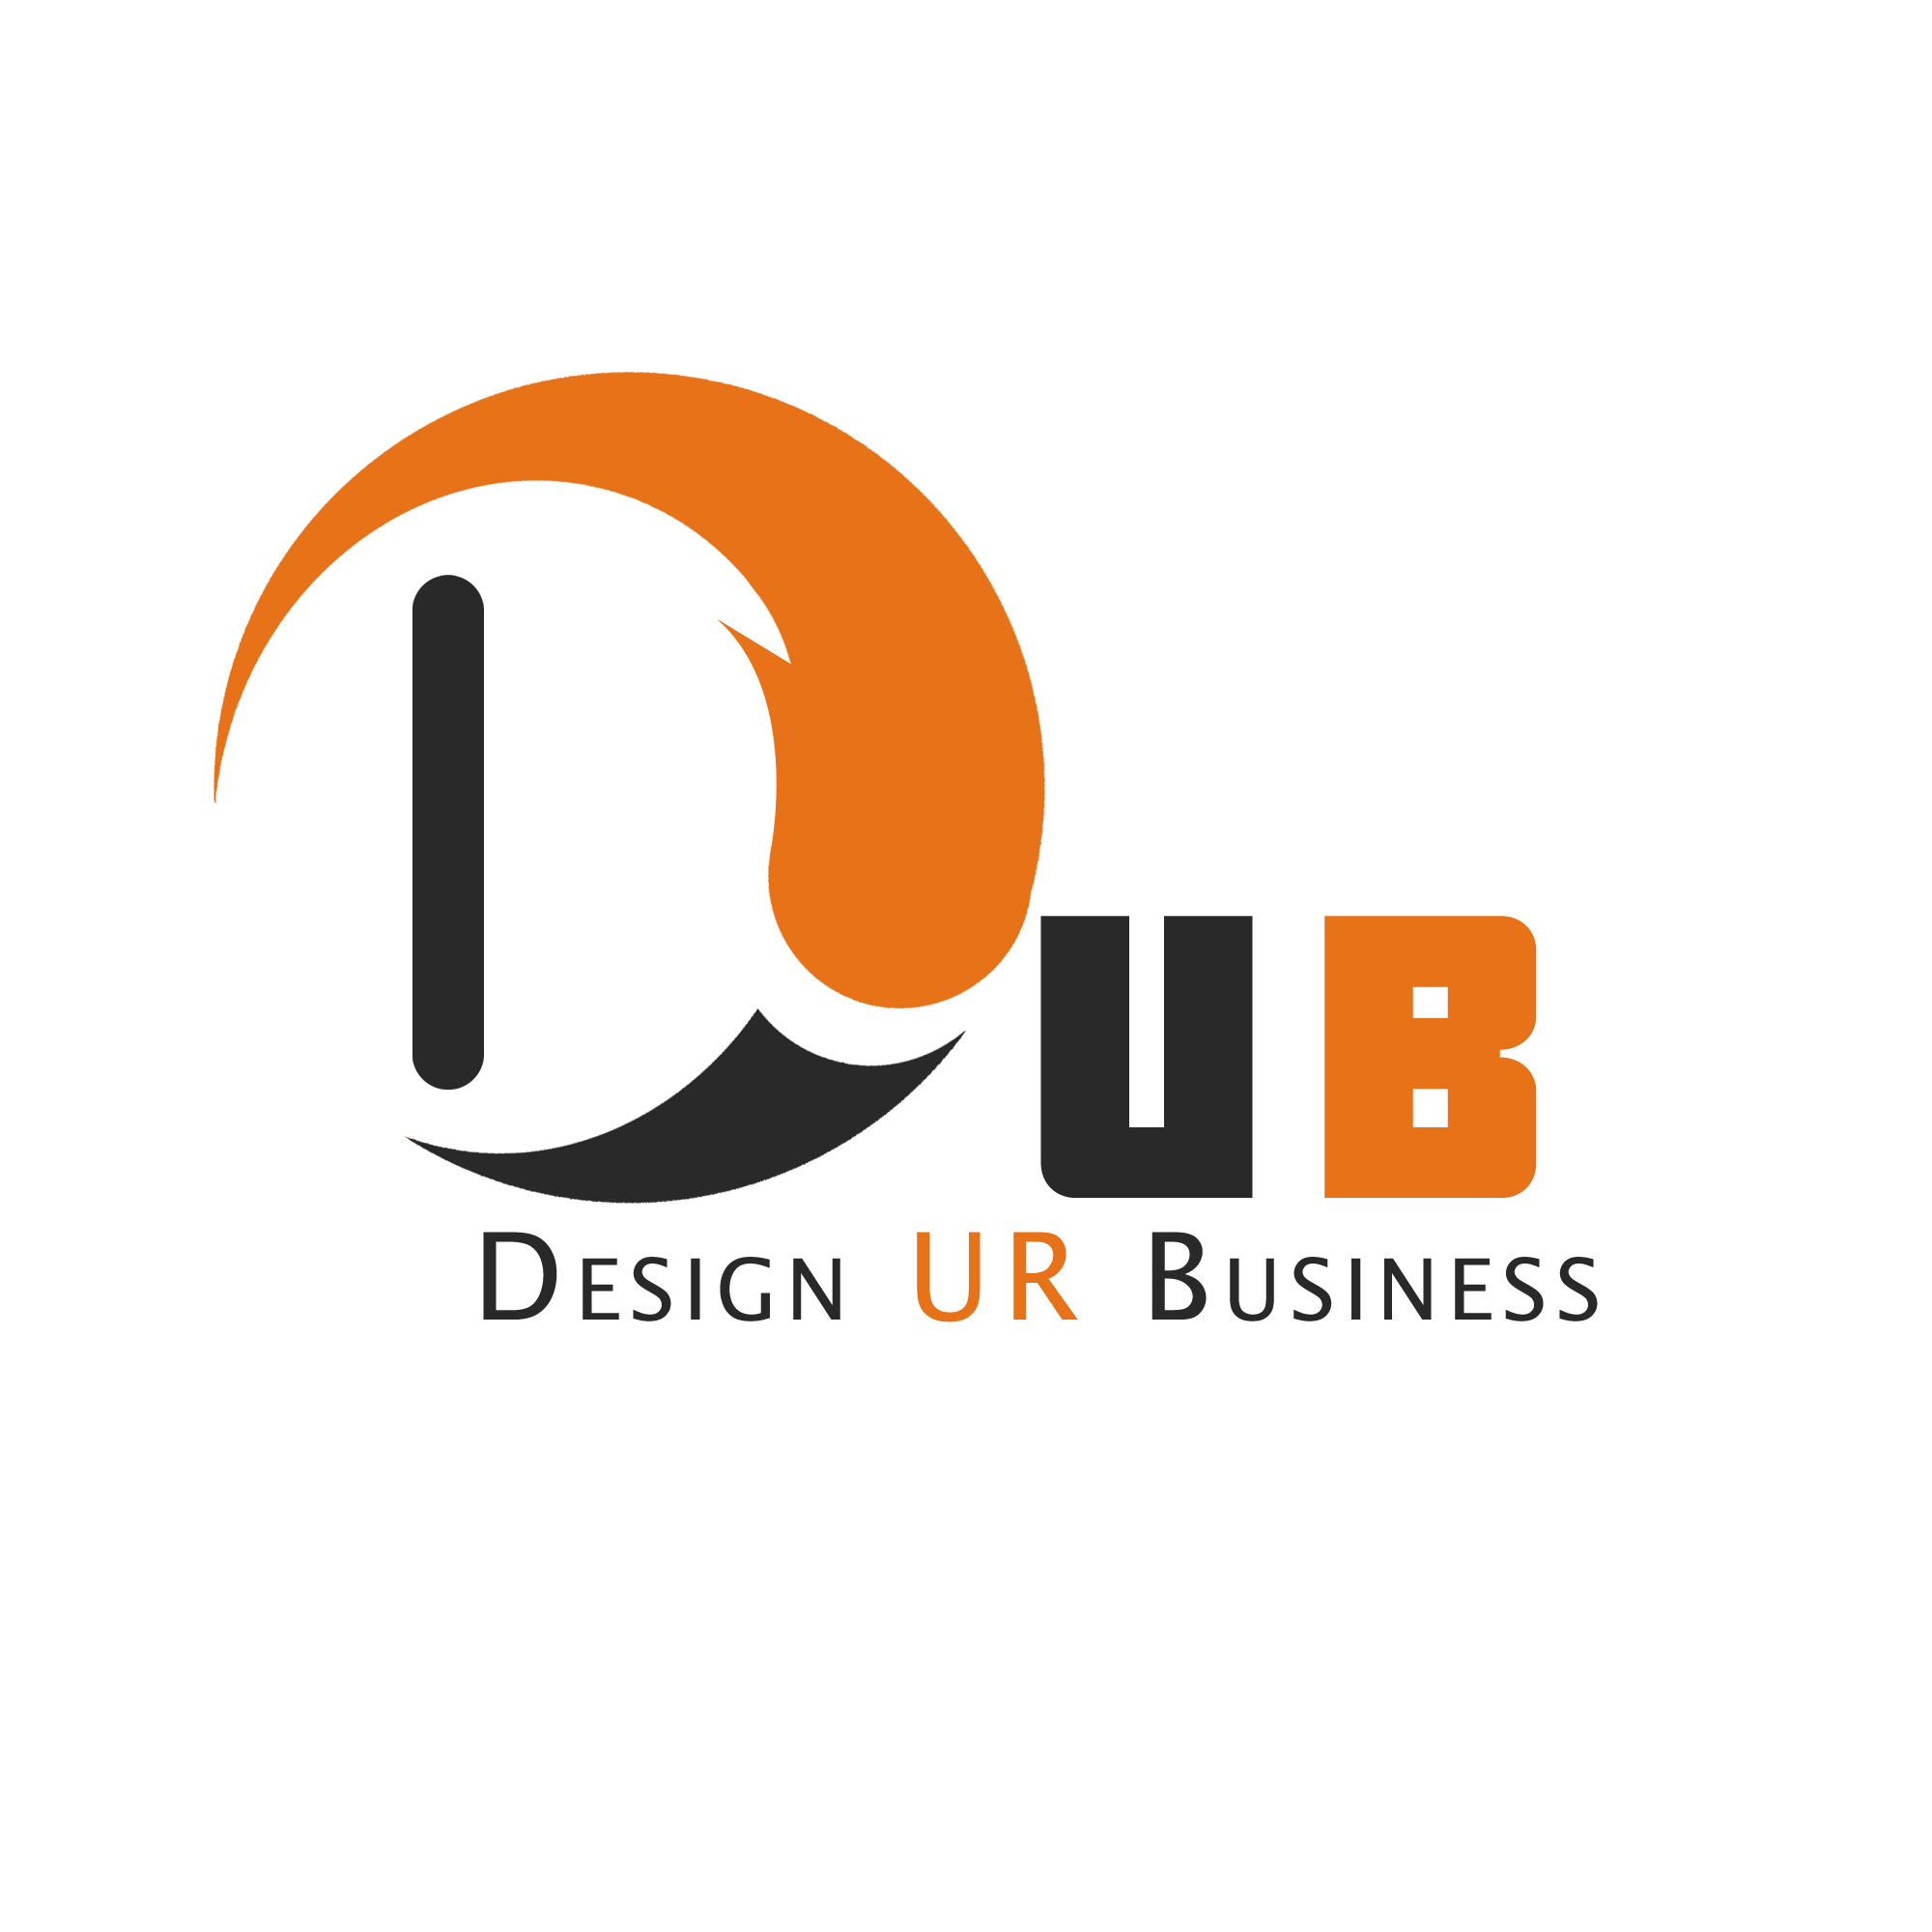 Index of logo business consulting logo design Business logo design company